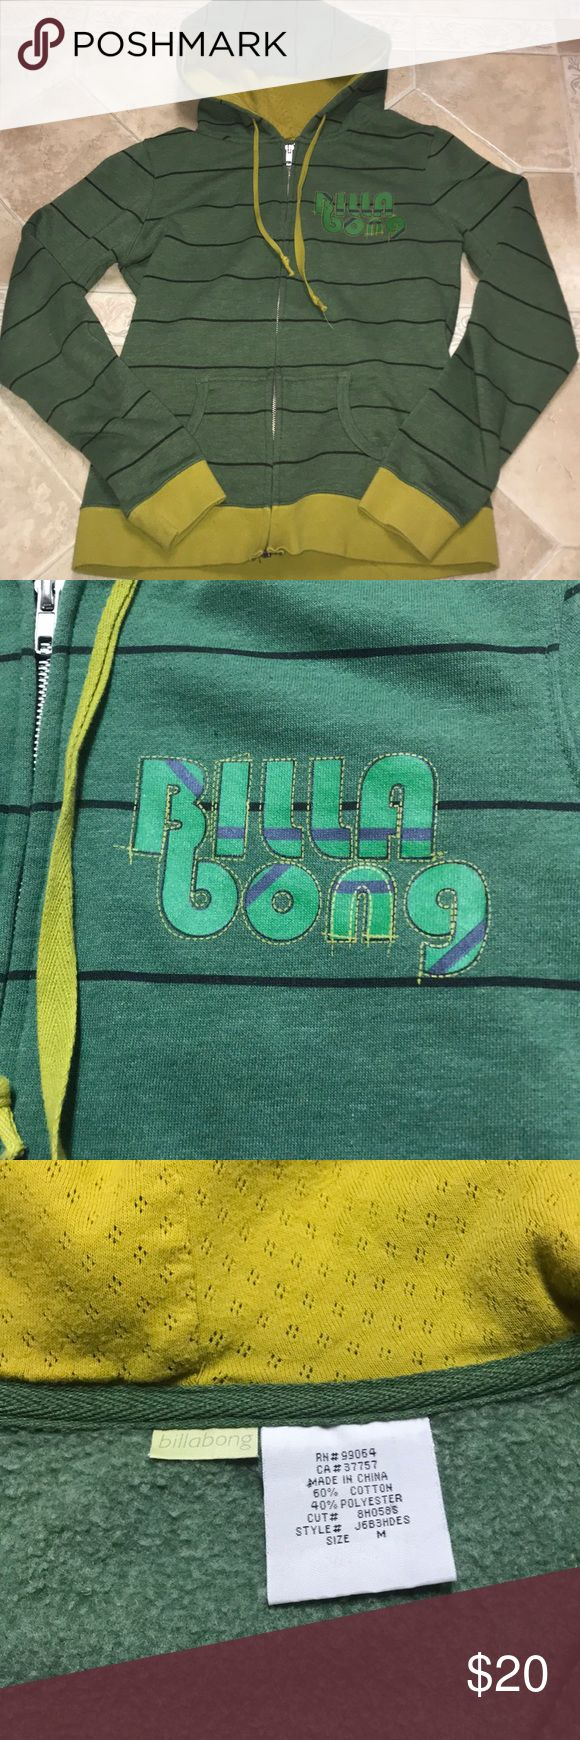 🔥Like New🔥Juniors Billabong zip up hoodie Juniors green, navy blue, and mustard yellow zip up hooded sweatshirt. Size medium and only worn 3 times. Great condition.   *Bundle to save 15%+ and only pay one shipping fee!!!  *Everything comes from a clean and smoke free household.  *Pet friendly household Billabong Tops Sweatshirts & Hoodies